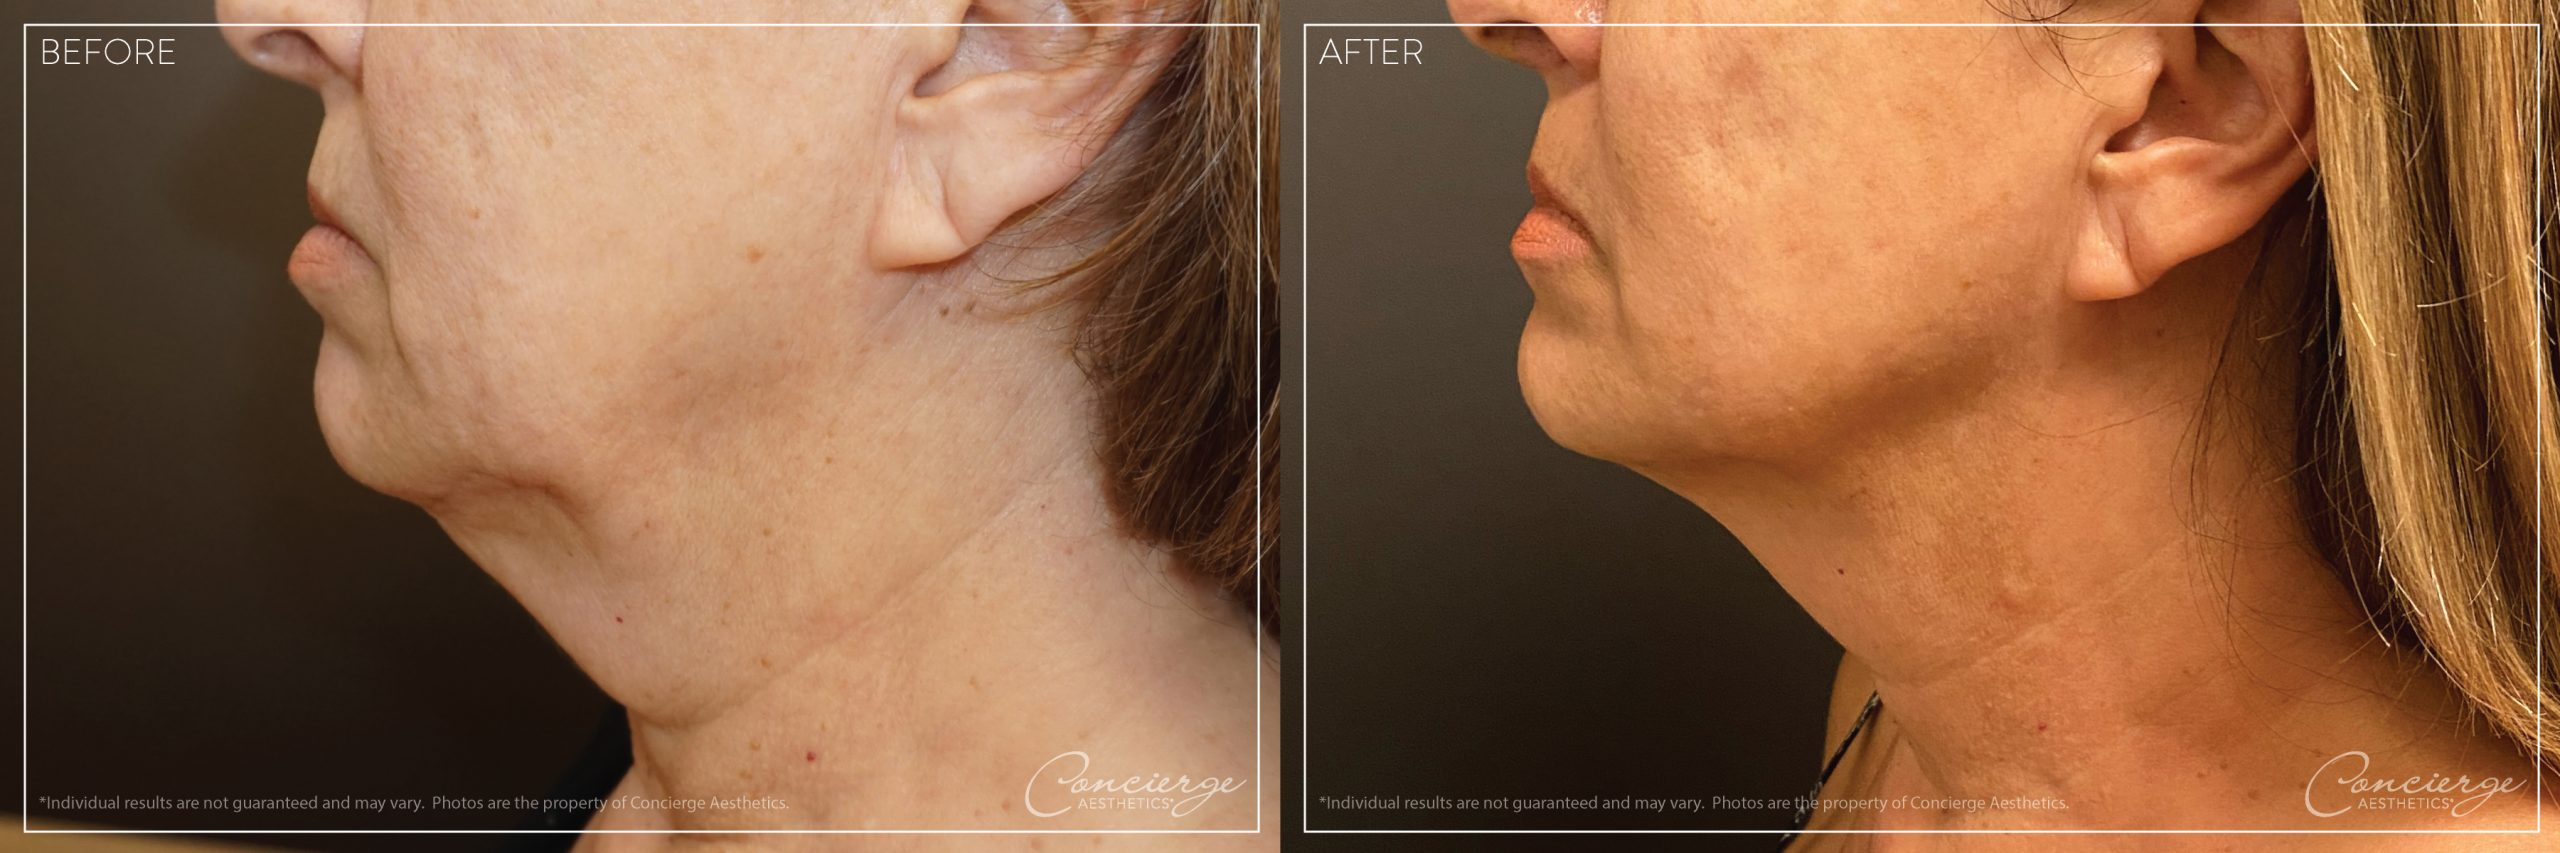 InstaLift - Before and After Photo - Concierge Aesthetics - Irvine